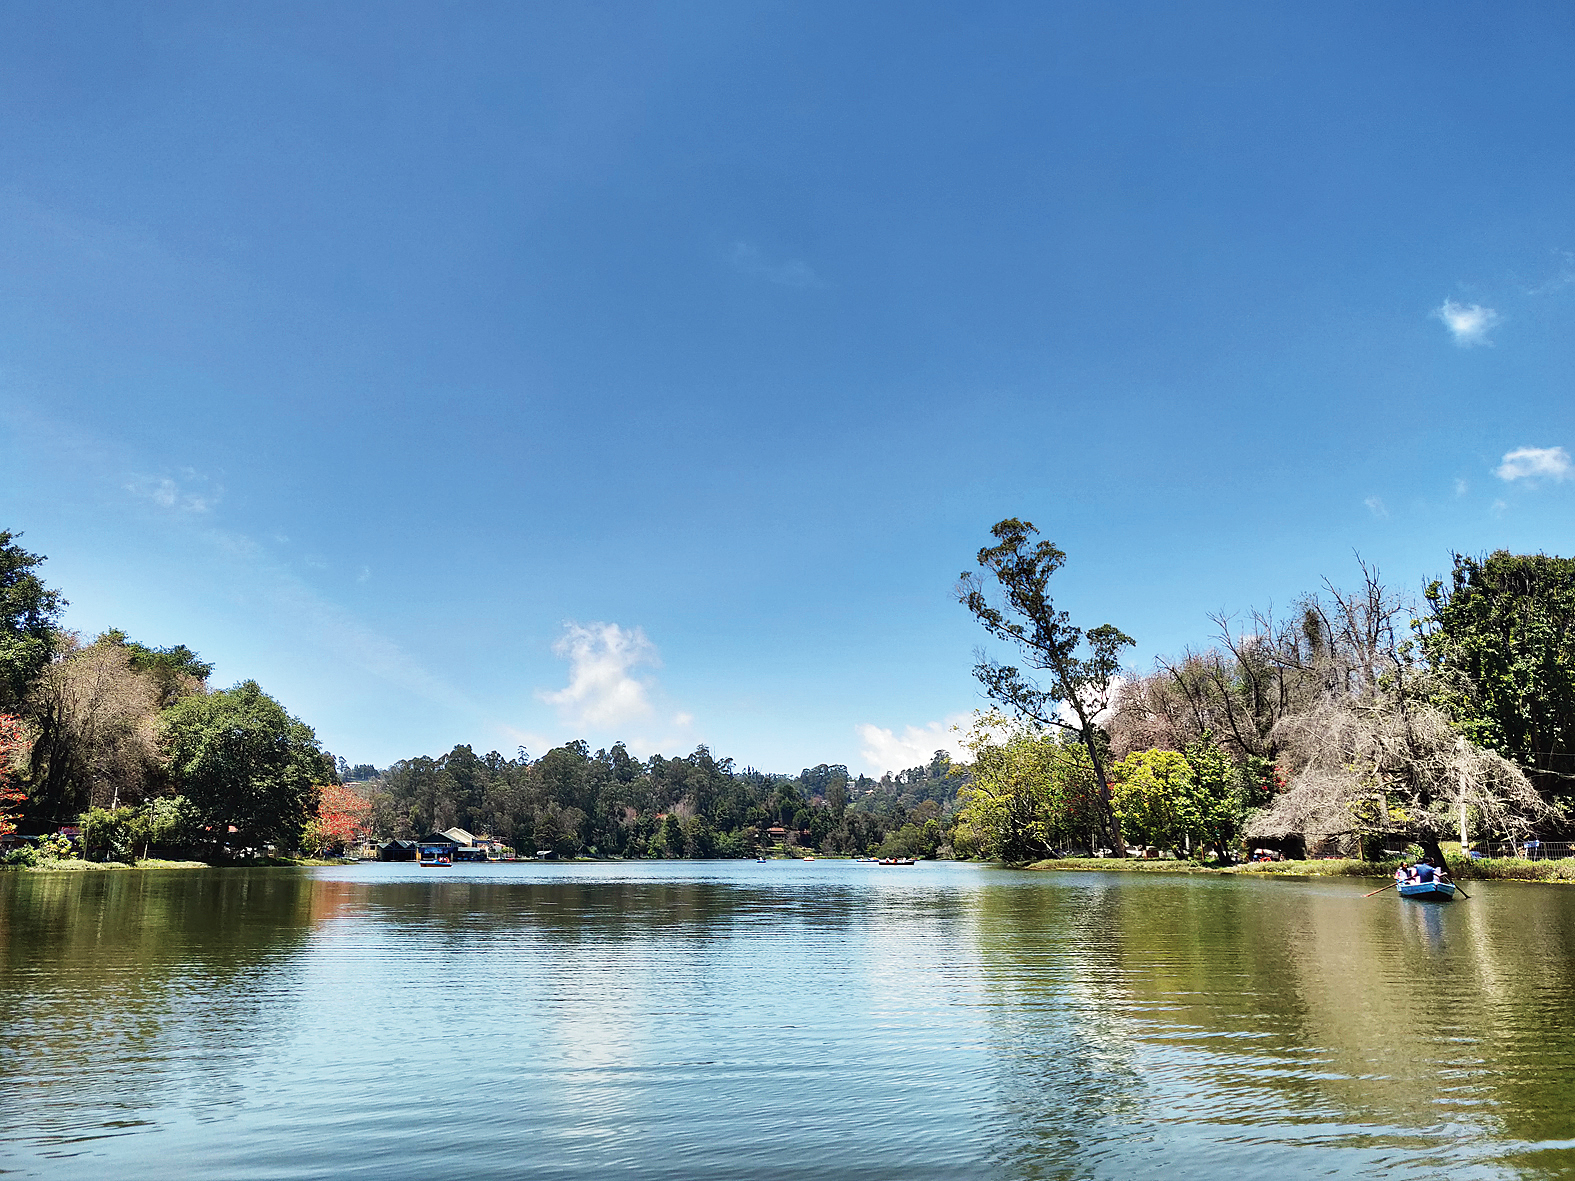 Located in the heart of the city is the famous Kodaikanal Lake. One can go for a 30-minute boat ride on its placid waters or just soak in the peaceful ambience from the shore. You can take two- and four-seater pedal boats, or, if you want to make it romantic, a shikara. It makes sense to take a boat with a boatman though. Those scared of water can go for horse or bicycle rides around it